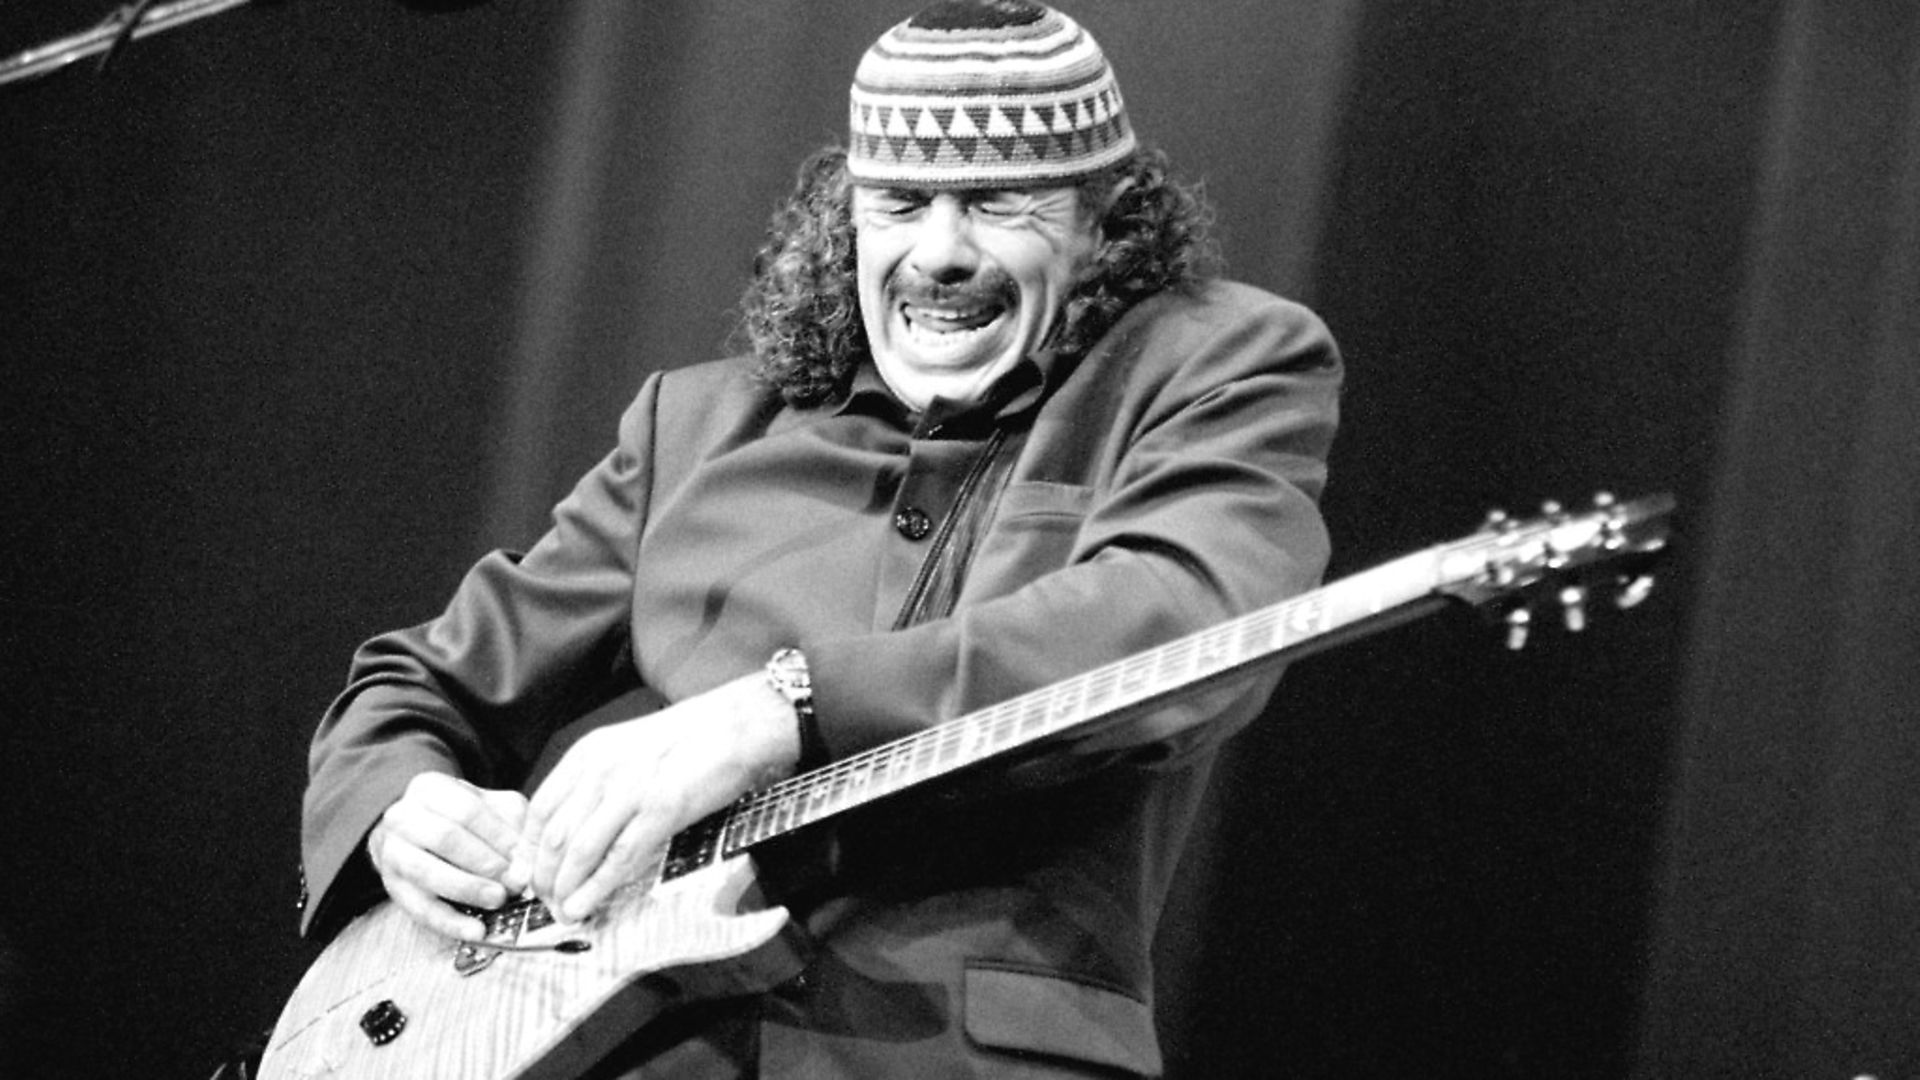 Carlos Santana performs on July 12, 1996, at the North Sea Jazz Festival in The Hague, Netherlands. Picture: Frans Schellekens/Redferns - Credit: Redferns